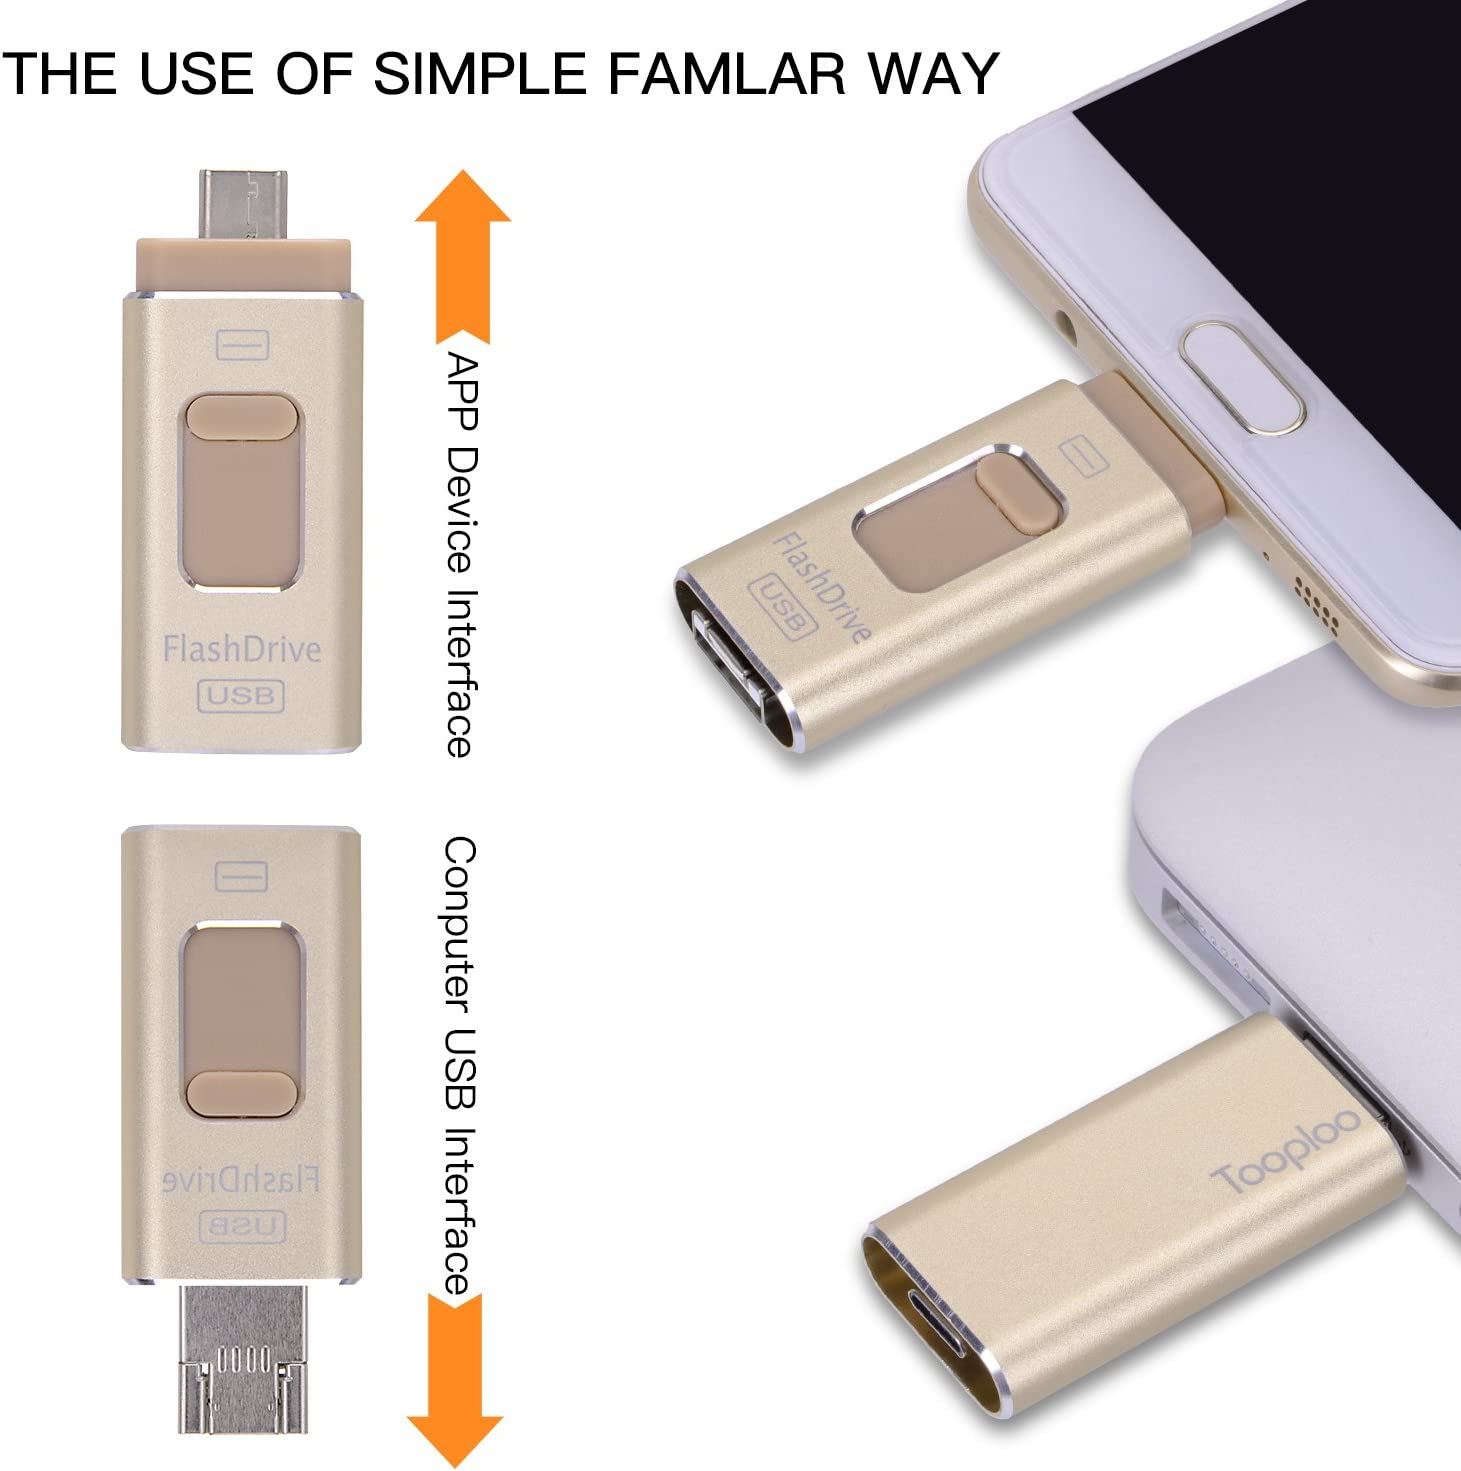 Memory Expansion for Apple IOS Android Computers Gold USB Flash Drives for iPhone 64GB Pen-Drive Memory Storage TOOPLOO 3 IN 1 Jump Drive Lightning Memory Stick External Storage